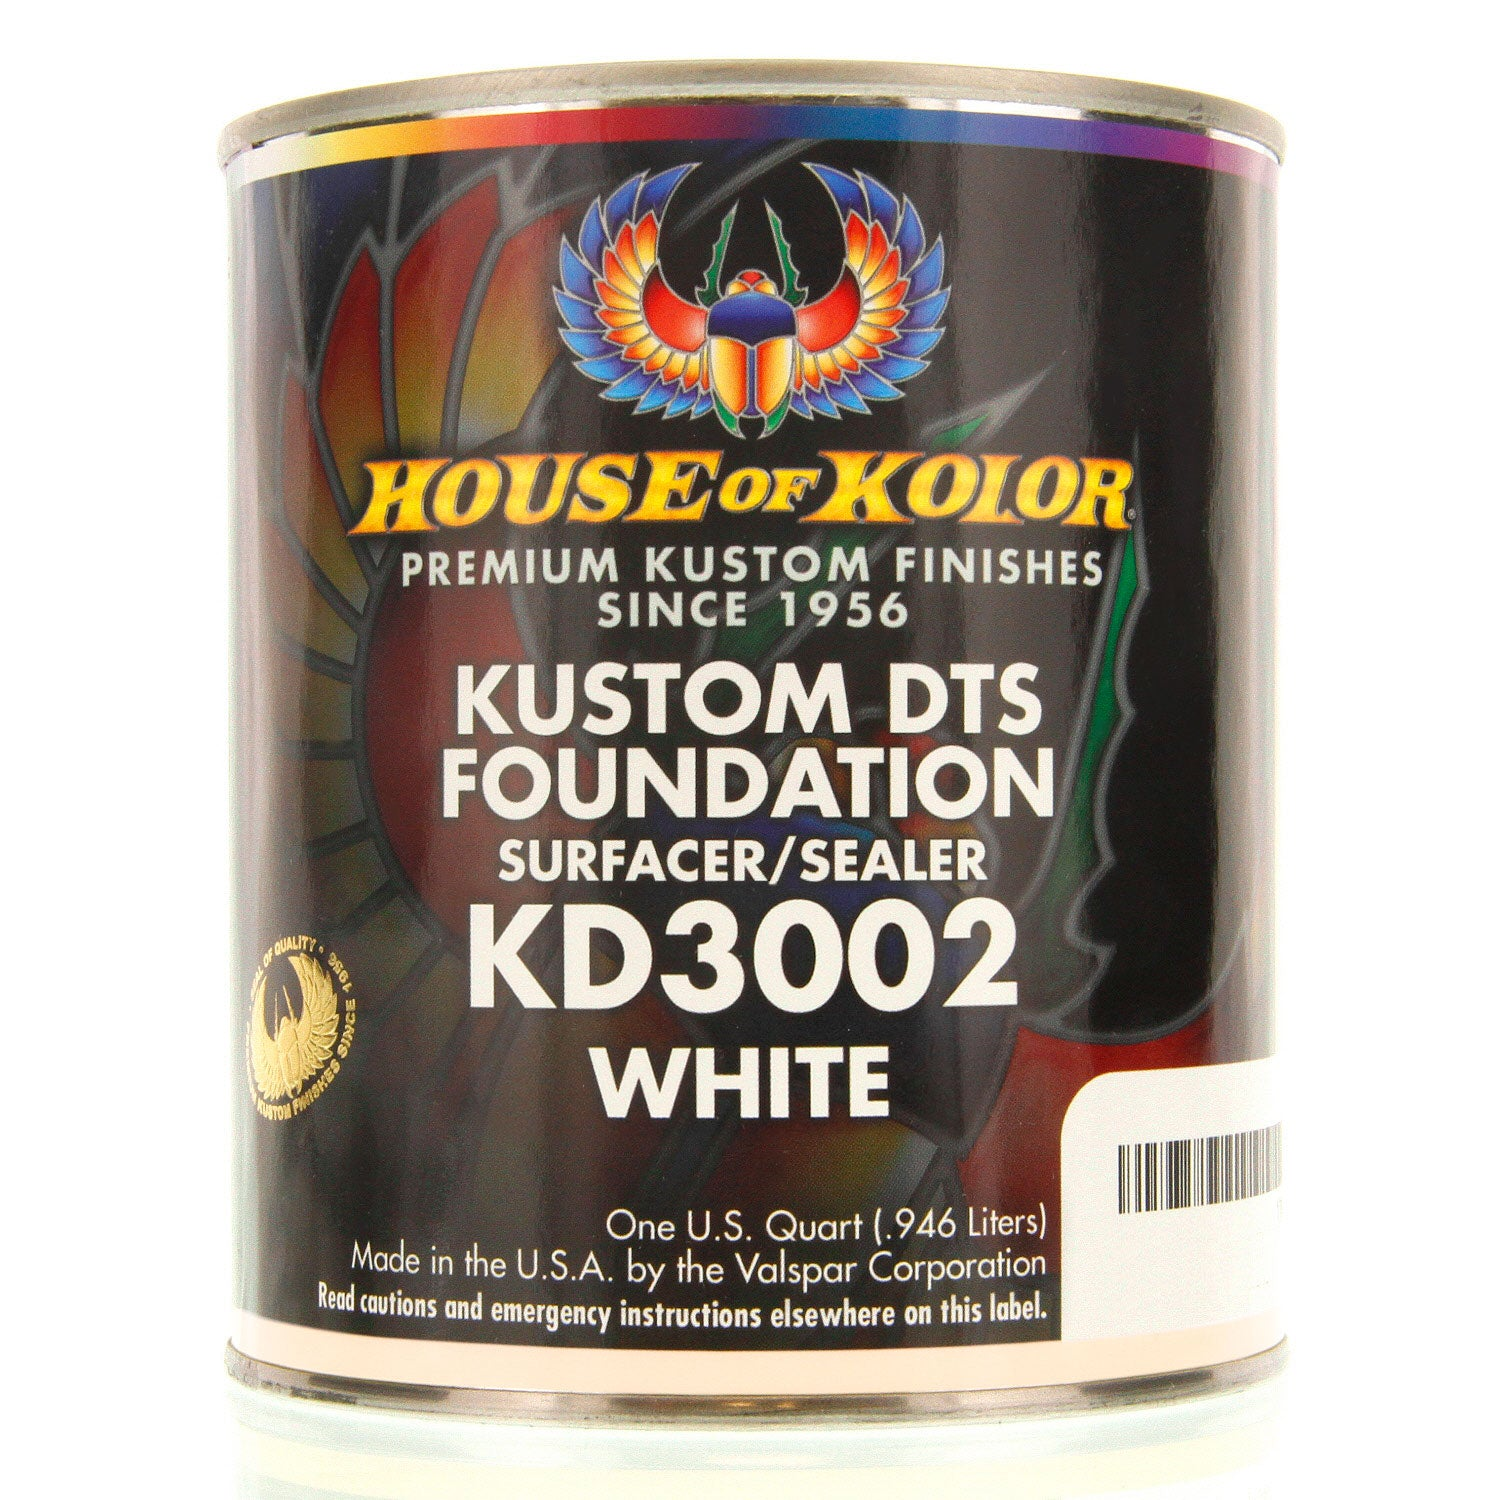 White - Custom Dts Foundation Surfacer Sealer Epoxy Primer, 1 Quart House of Kolor